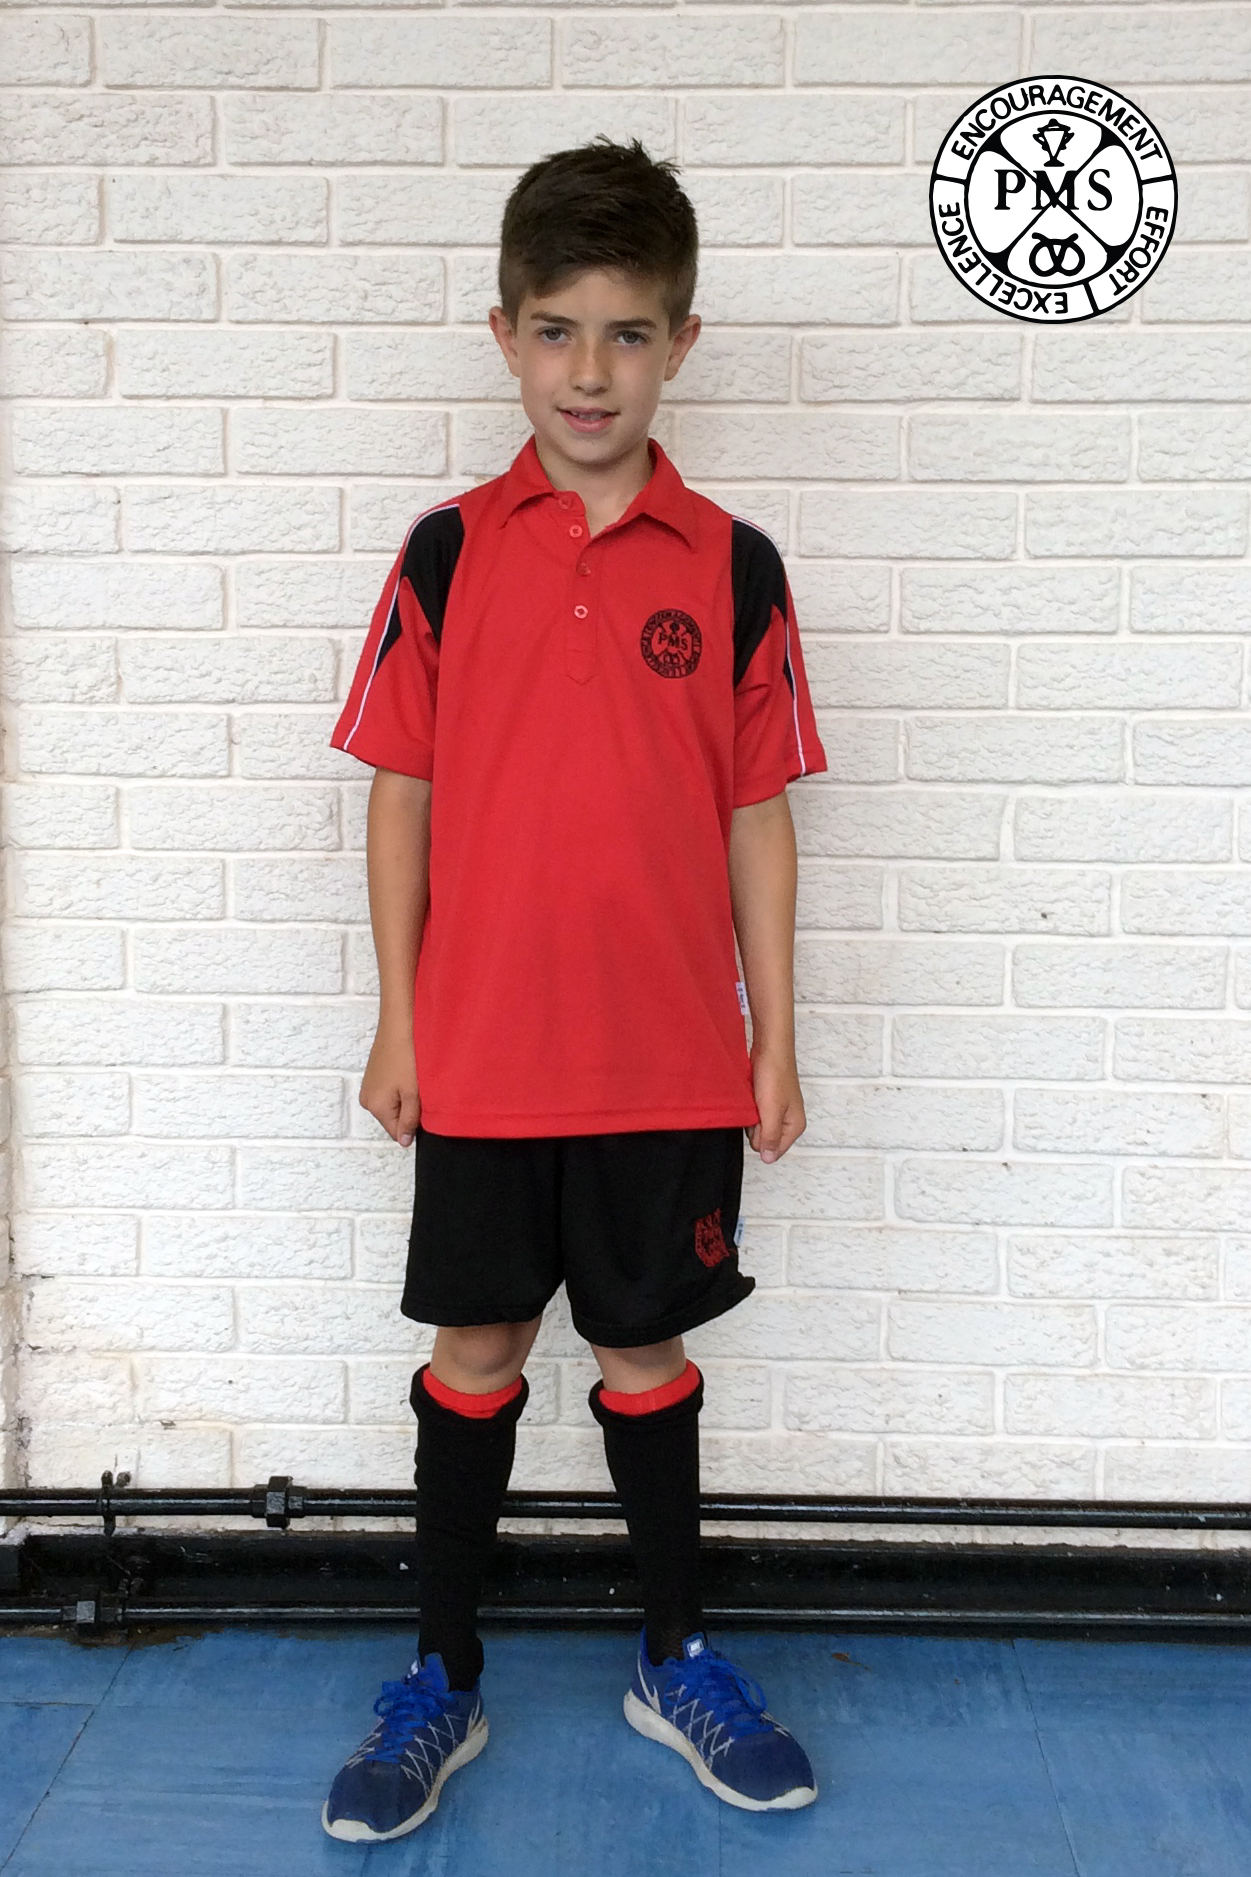 Picture Red Red Socks Black And Shoes Shorts And Shirt Black Red And